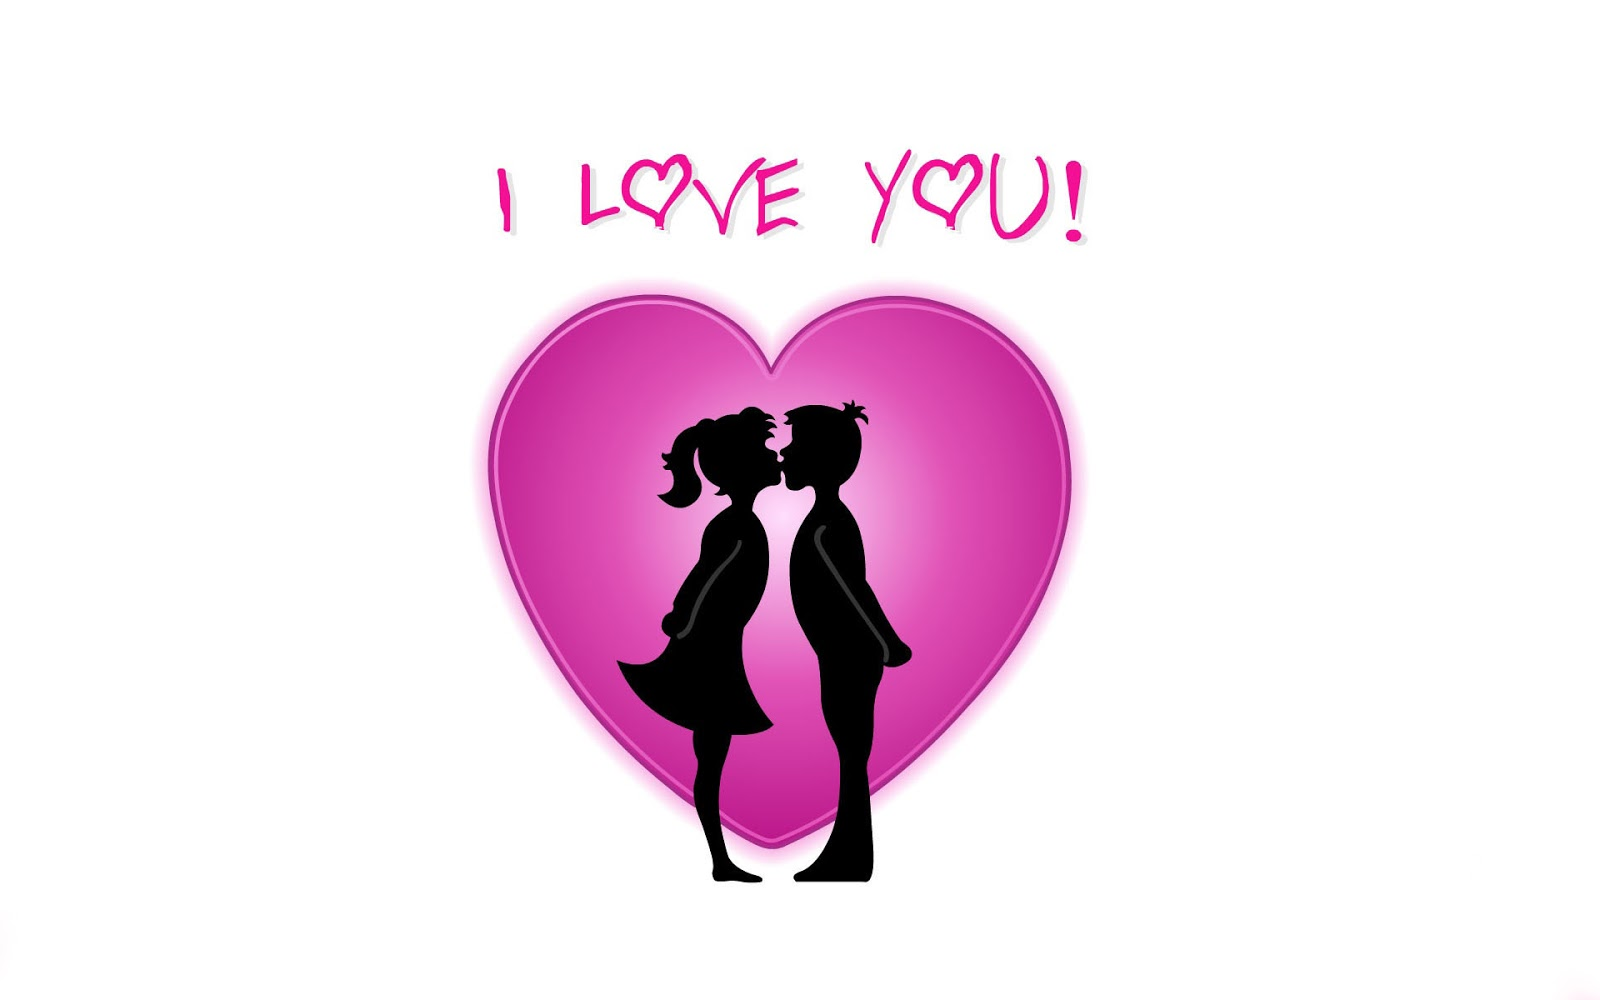 http://1.bp.blogspot.com/-lG8rC_1QgOg/UO1q-0dBvzI/AAAAAAAABfw/yX3RqPFXVFA/s1600/Love+Kiss+Wallpapers+(12).jpg